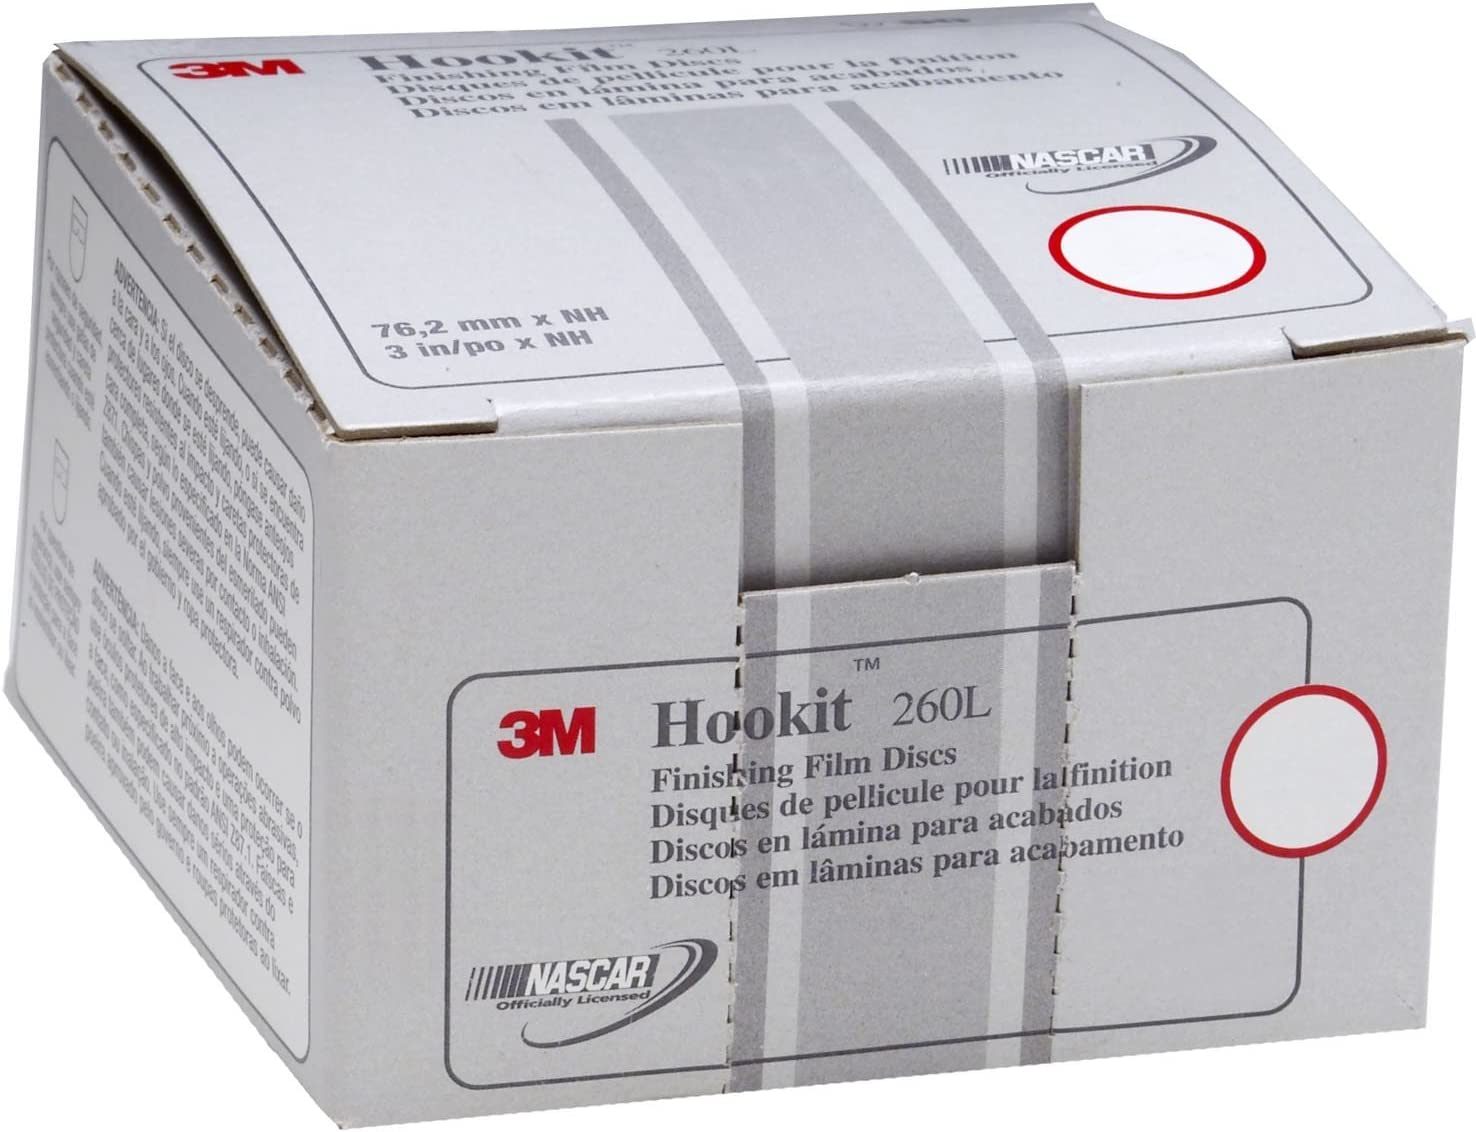 B002IVAB08 3M Hookit Finishing Film Abrasive Disc 260L, 00969, 6 in, P1000, 100 discs per carton 71kt6kmP7bL